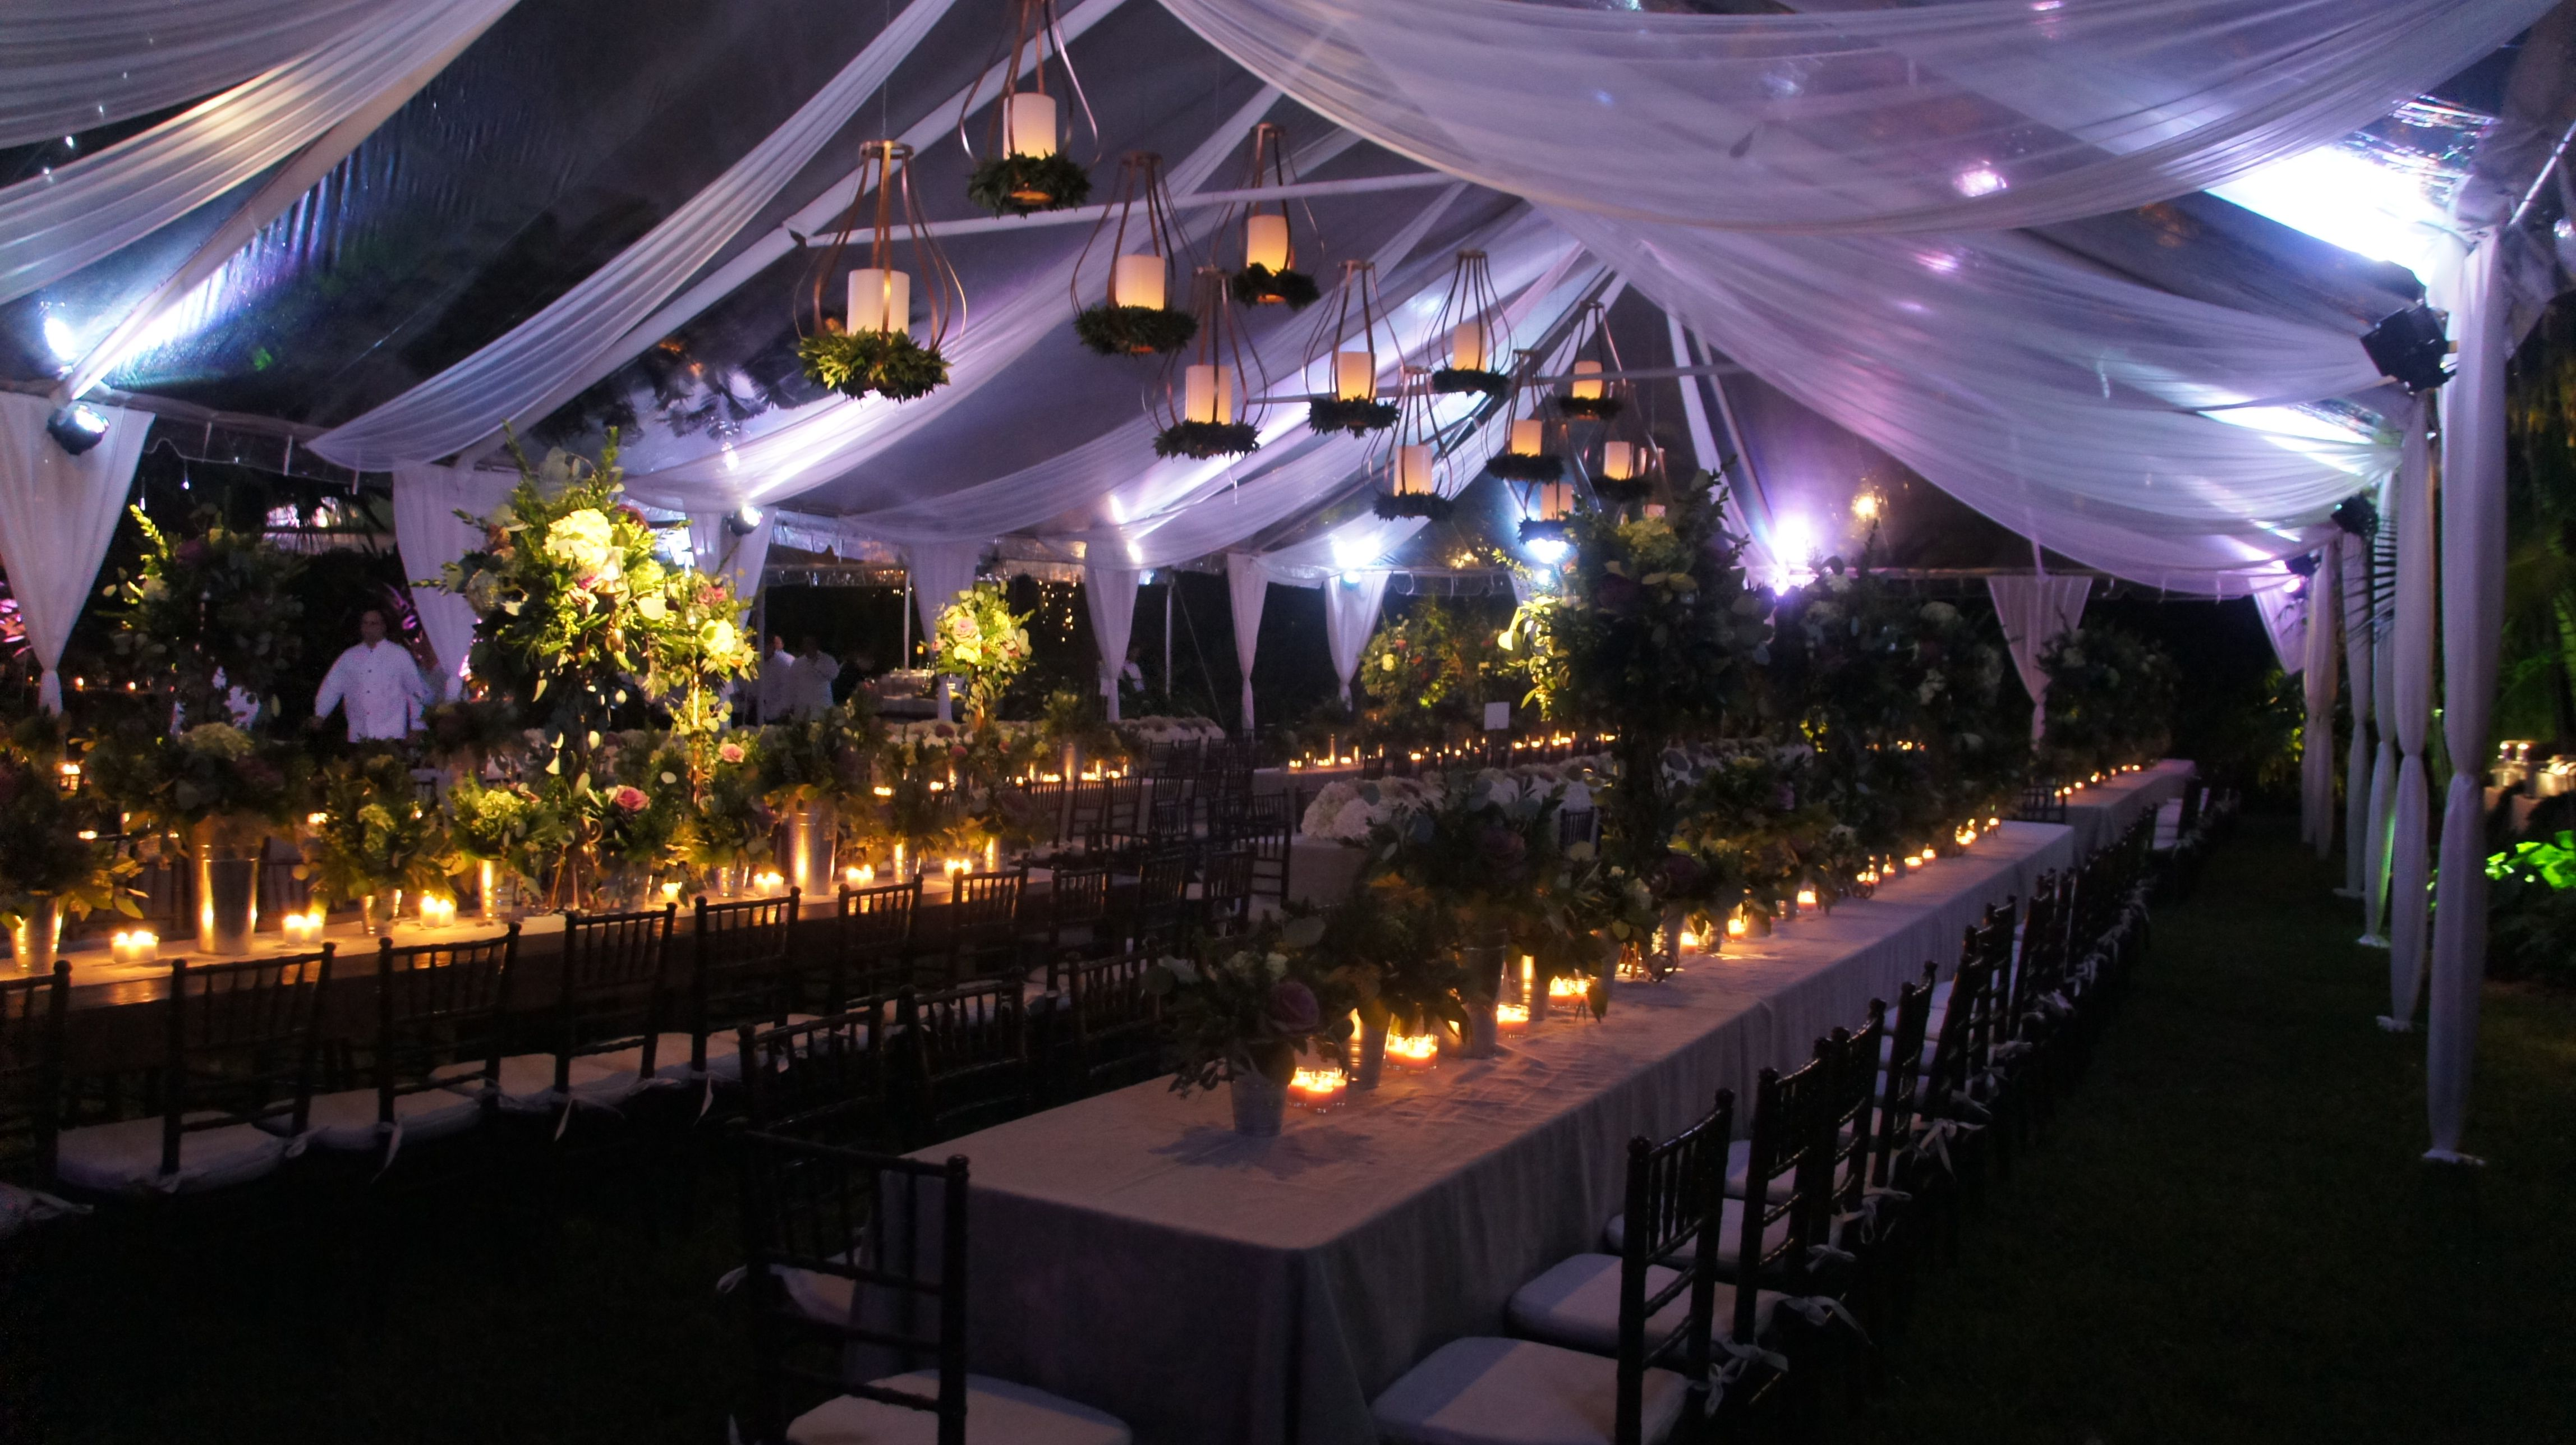 Blow Your Friends Away With These Awesome Party Tent Lighting Ideas For Your Next Outdoor Evening Ev Party Tent Lighting Wedding Tent Lighting Tent Decorations